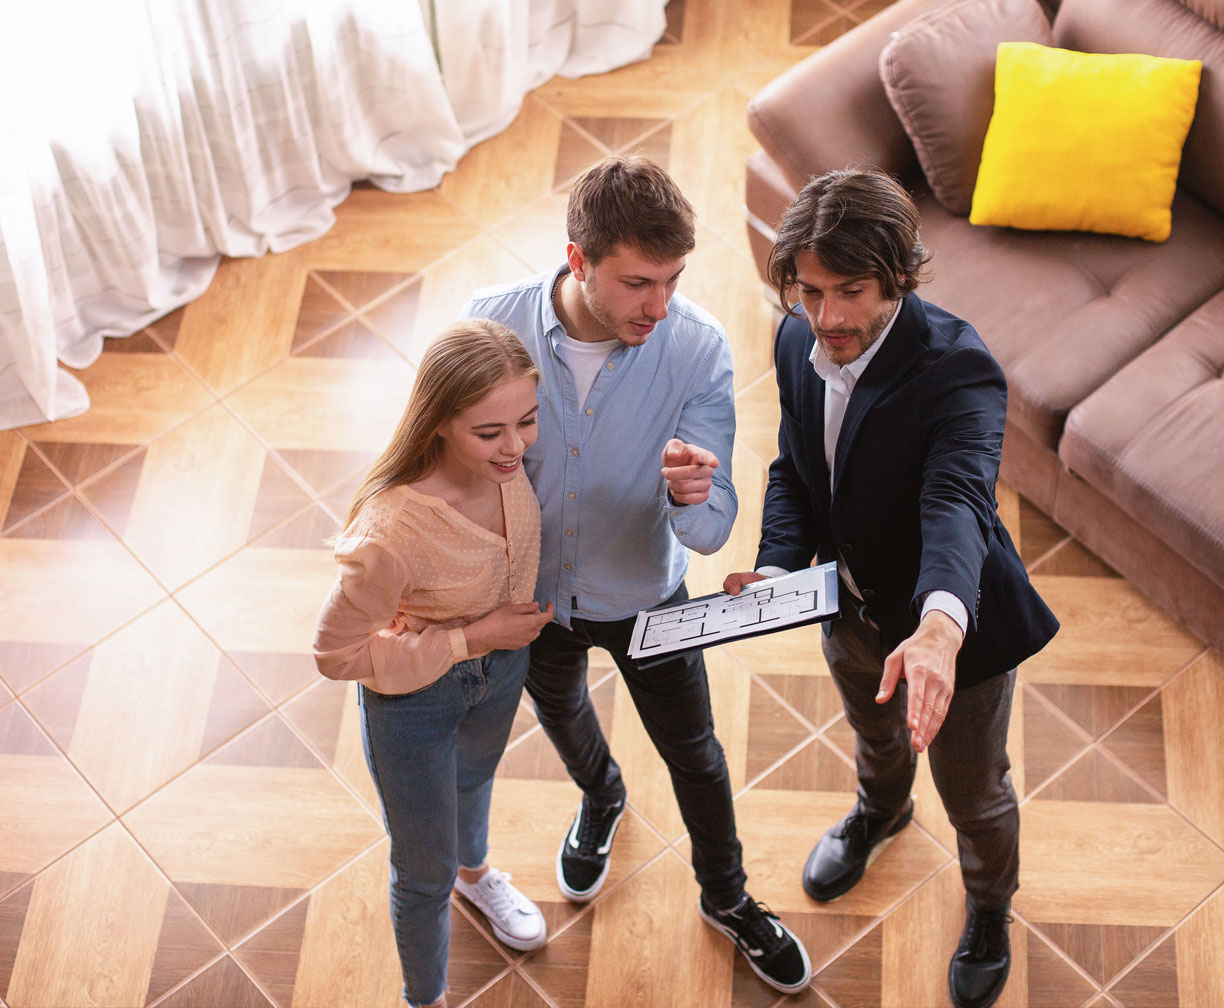 The right tenants for yourproperty